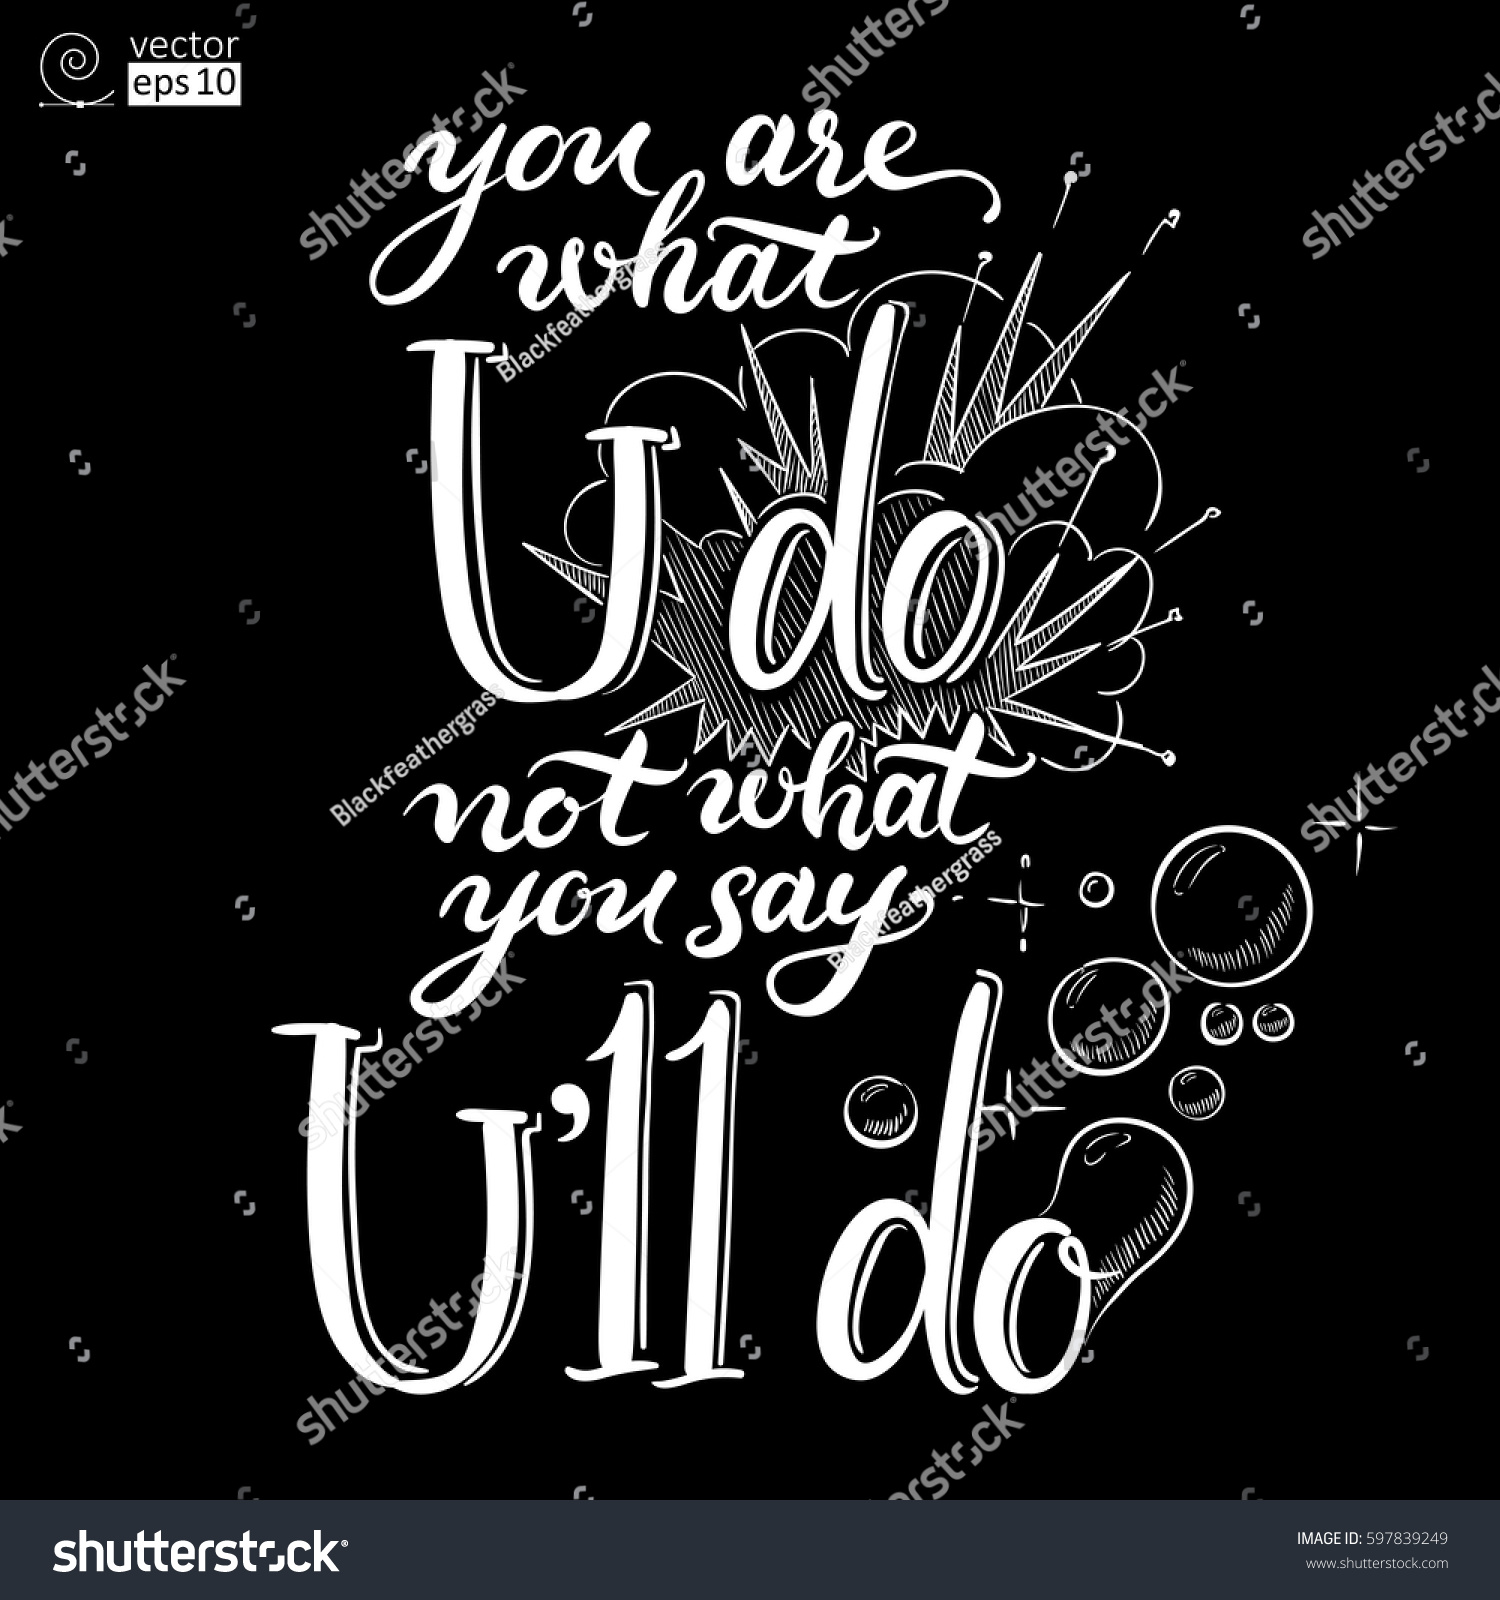 Vector concept motivational phrase you what stock vector 597839249 vector concept of motivational phrase you are what you do not what you say kristyandbryce Choice Image